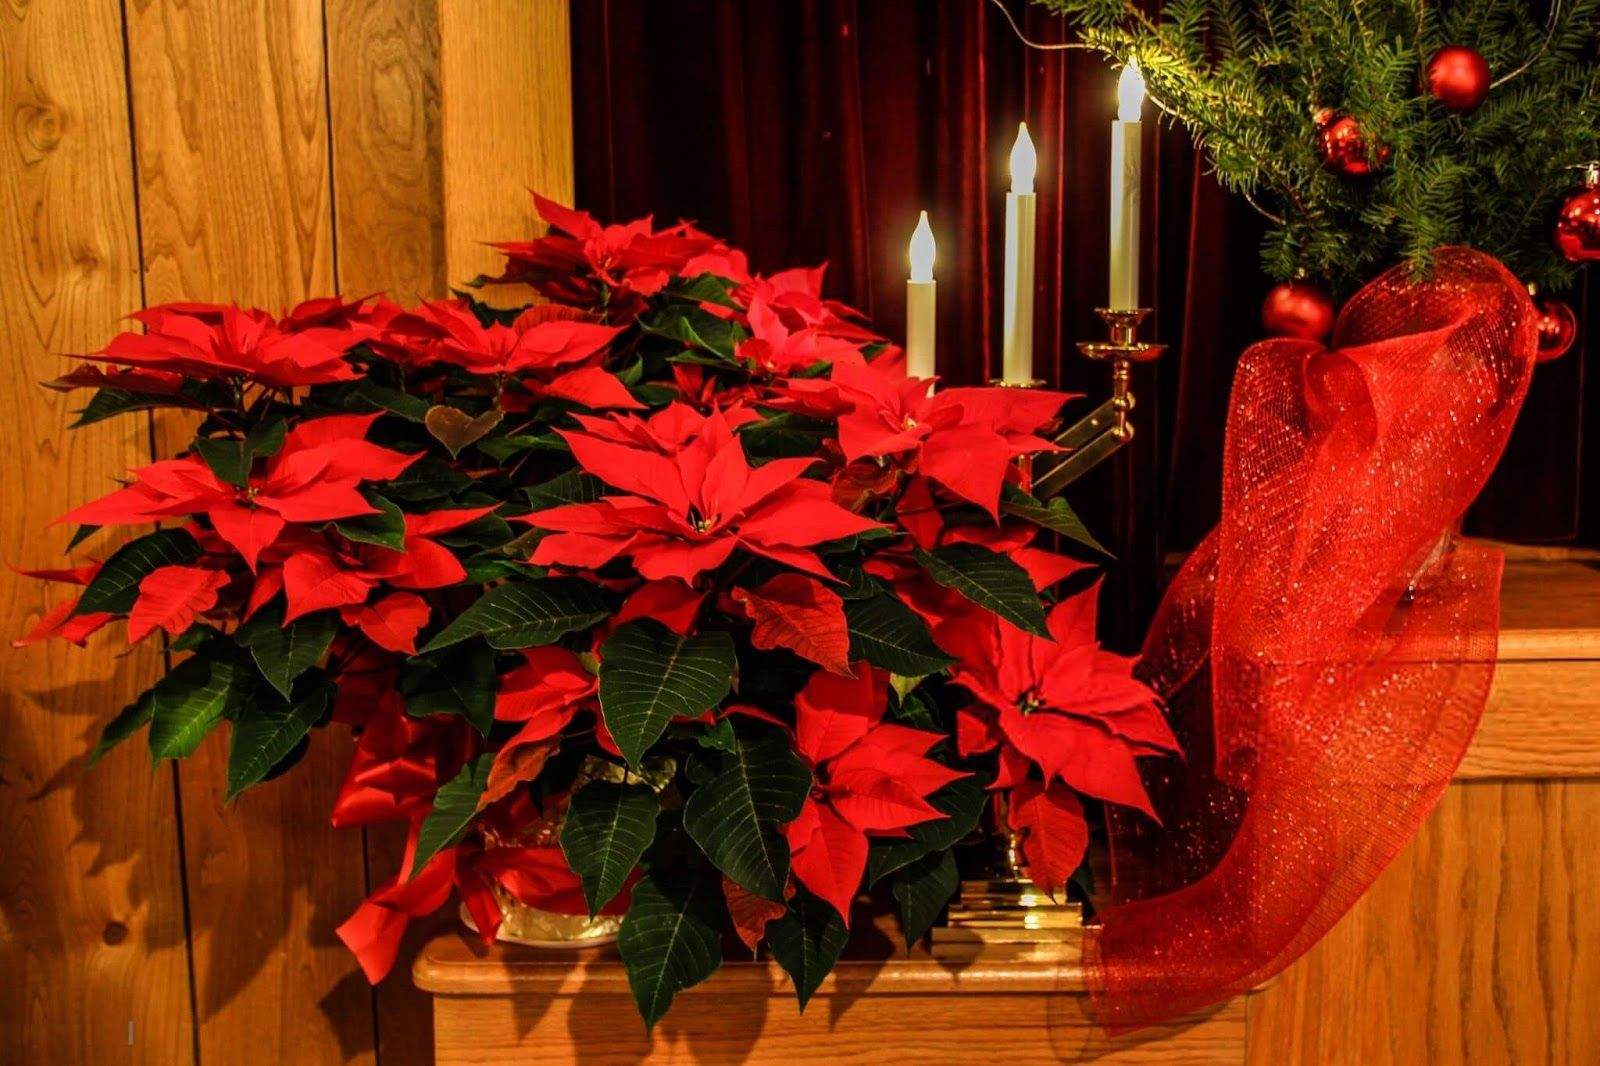 Beautiful Images of Christmas Flowers Free Download